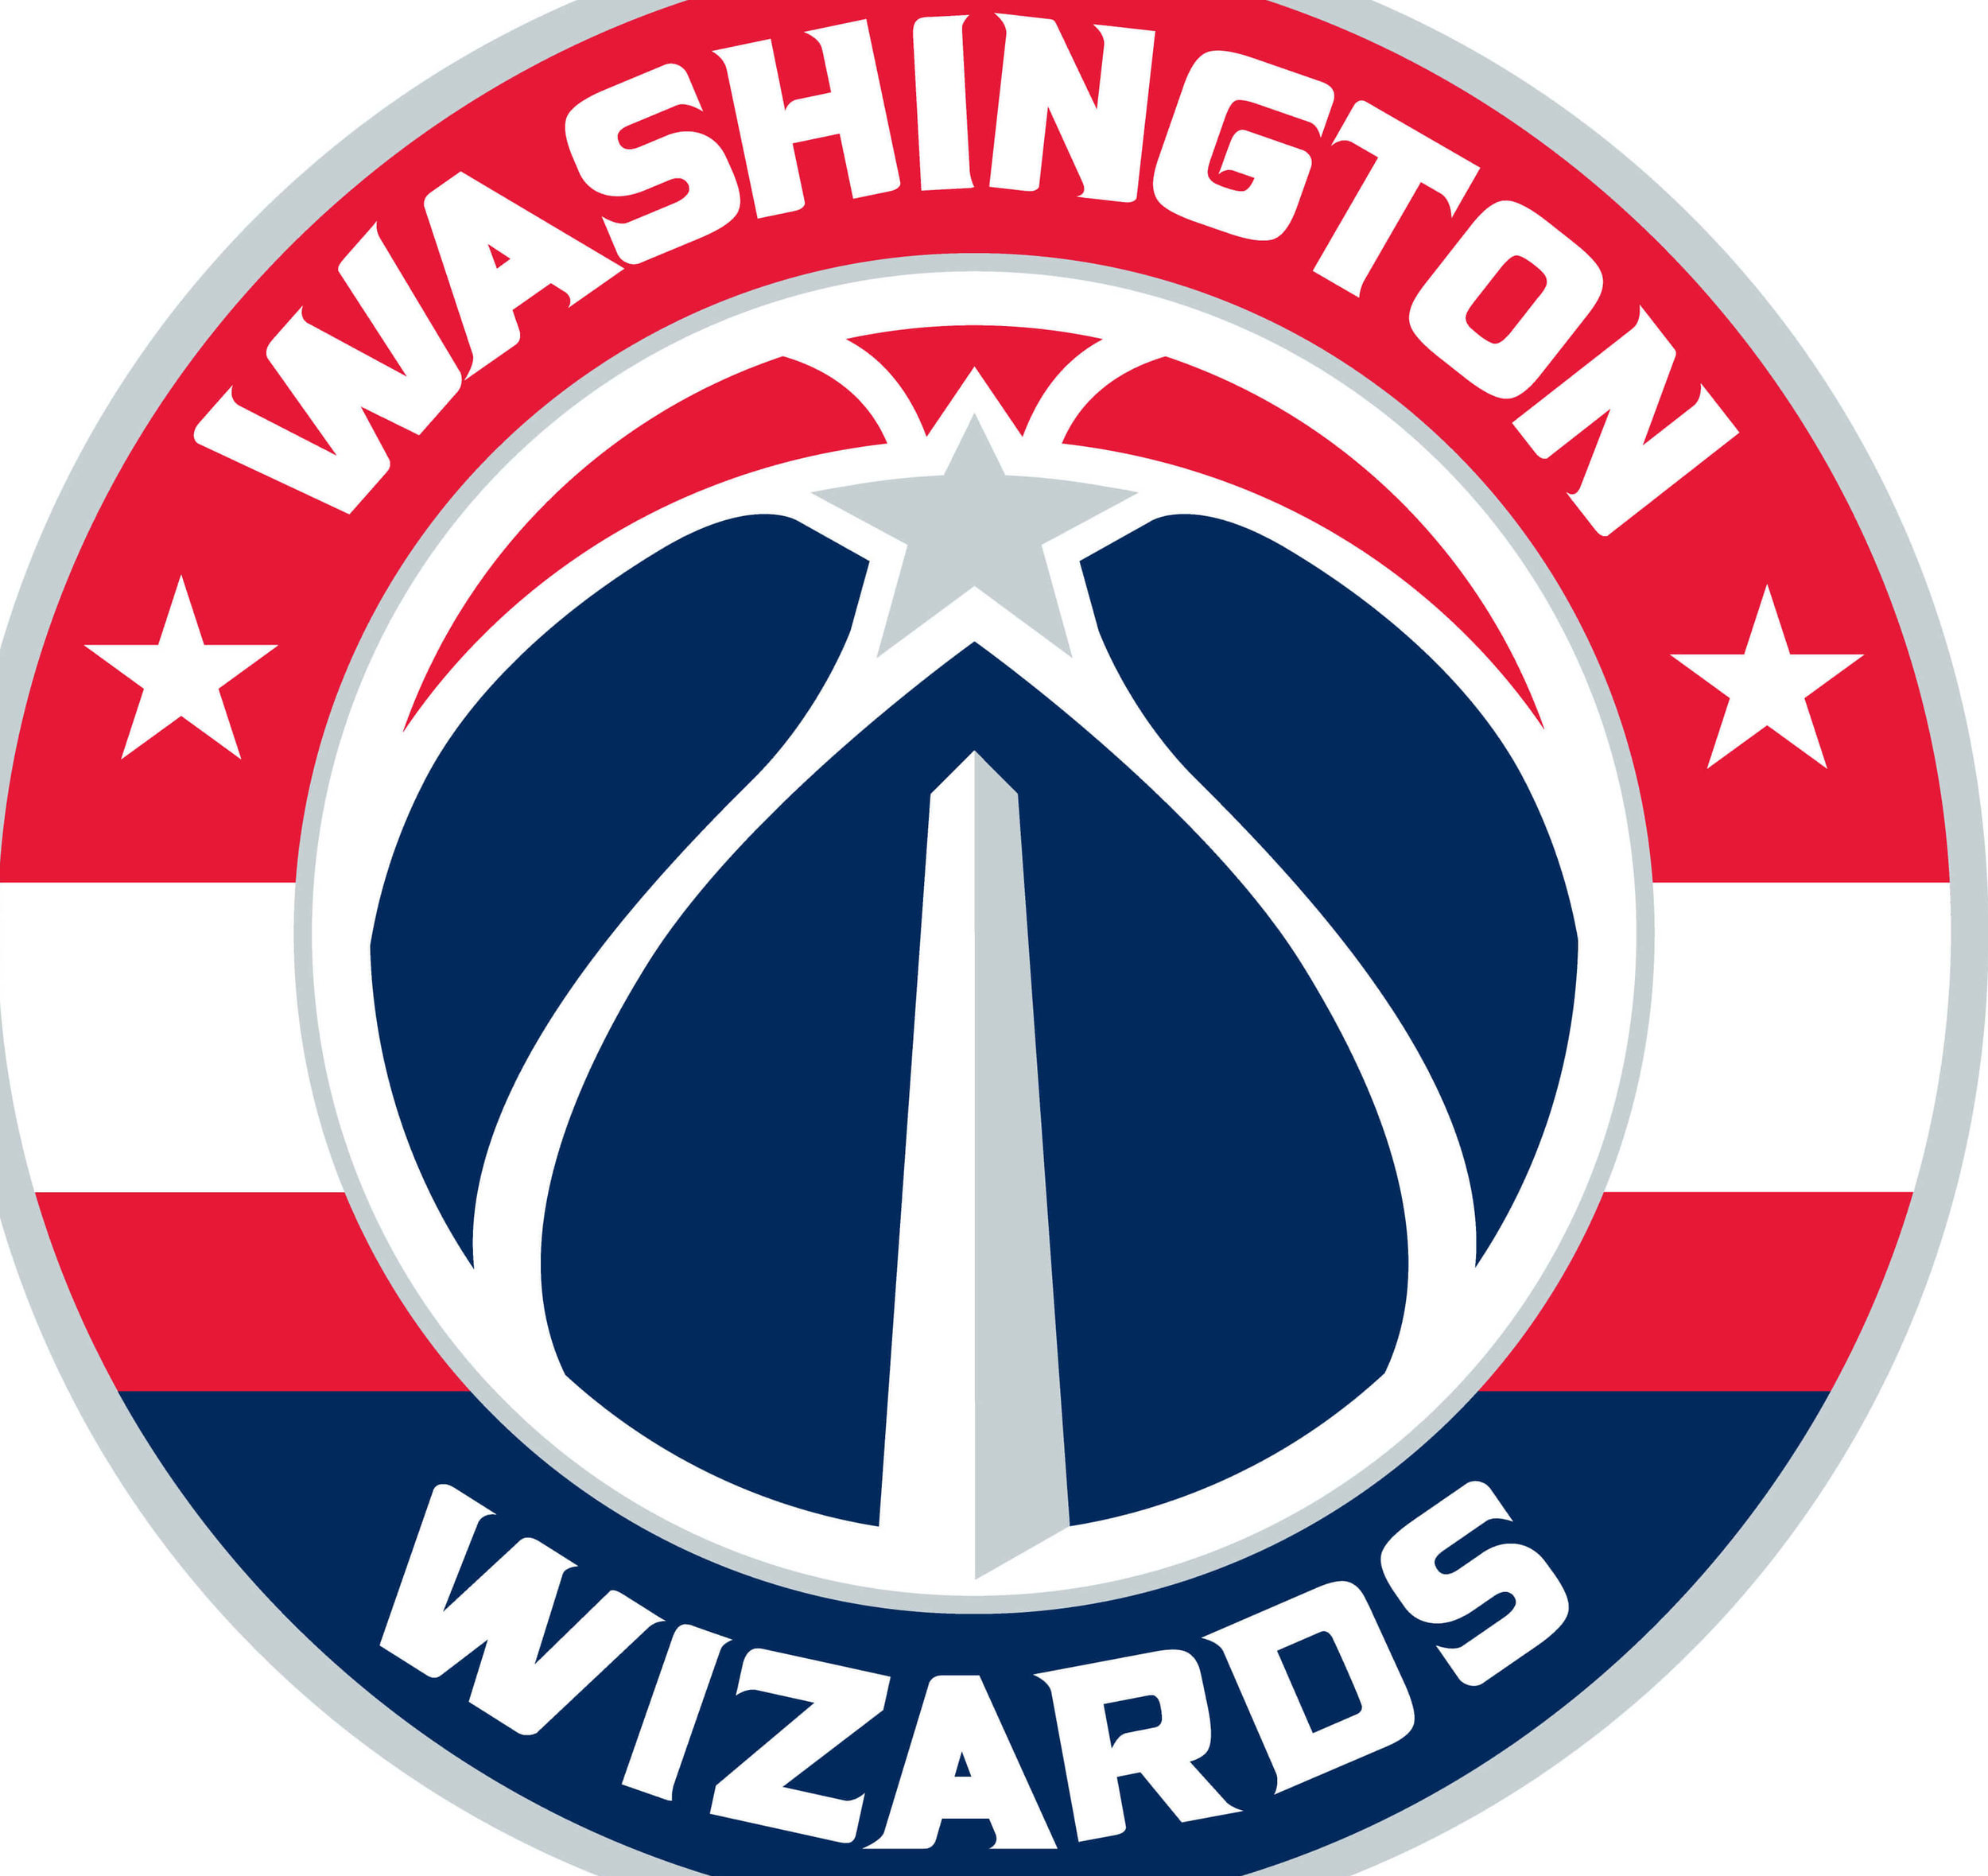 Washington_Wizards_logo-1-e1452989908242.jpg